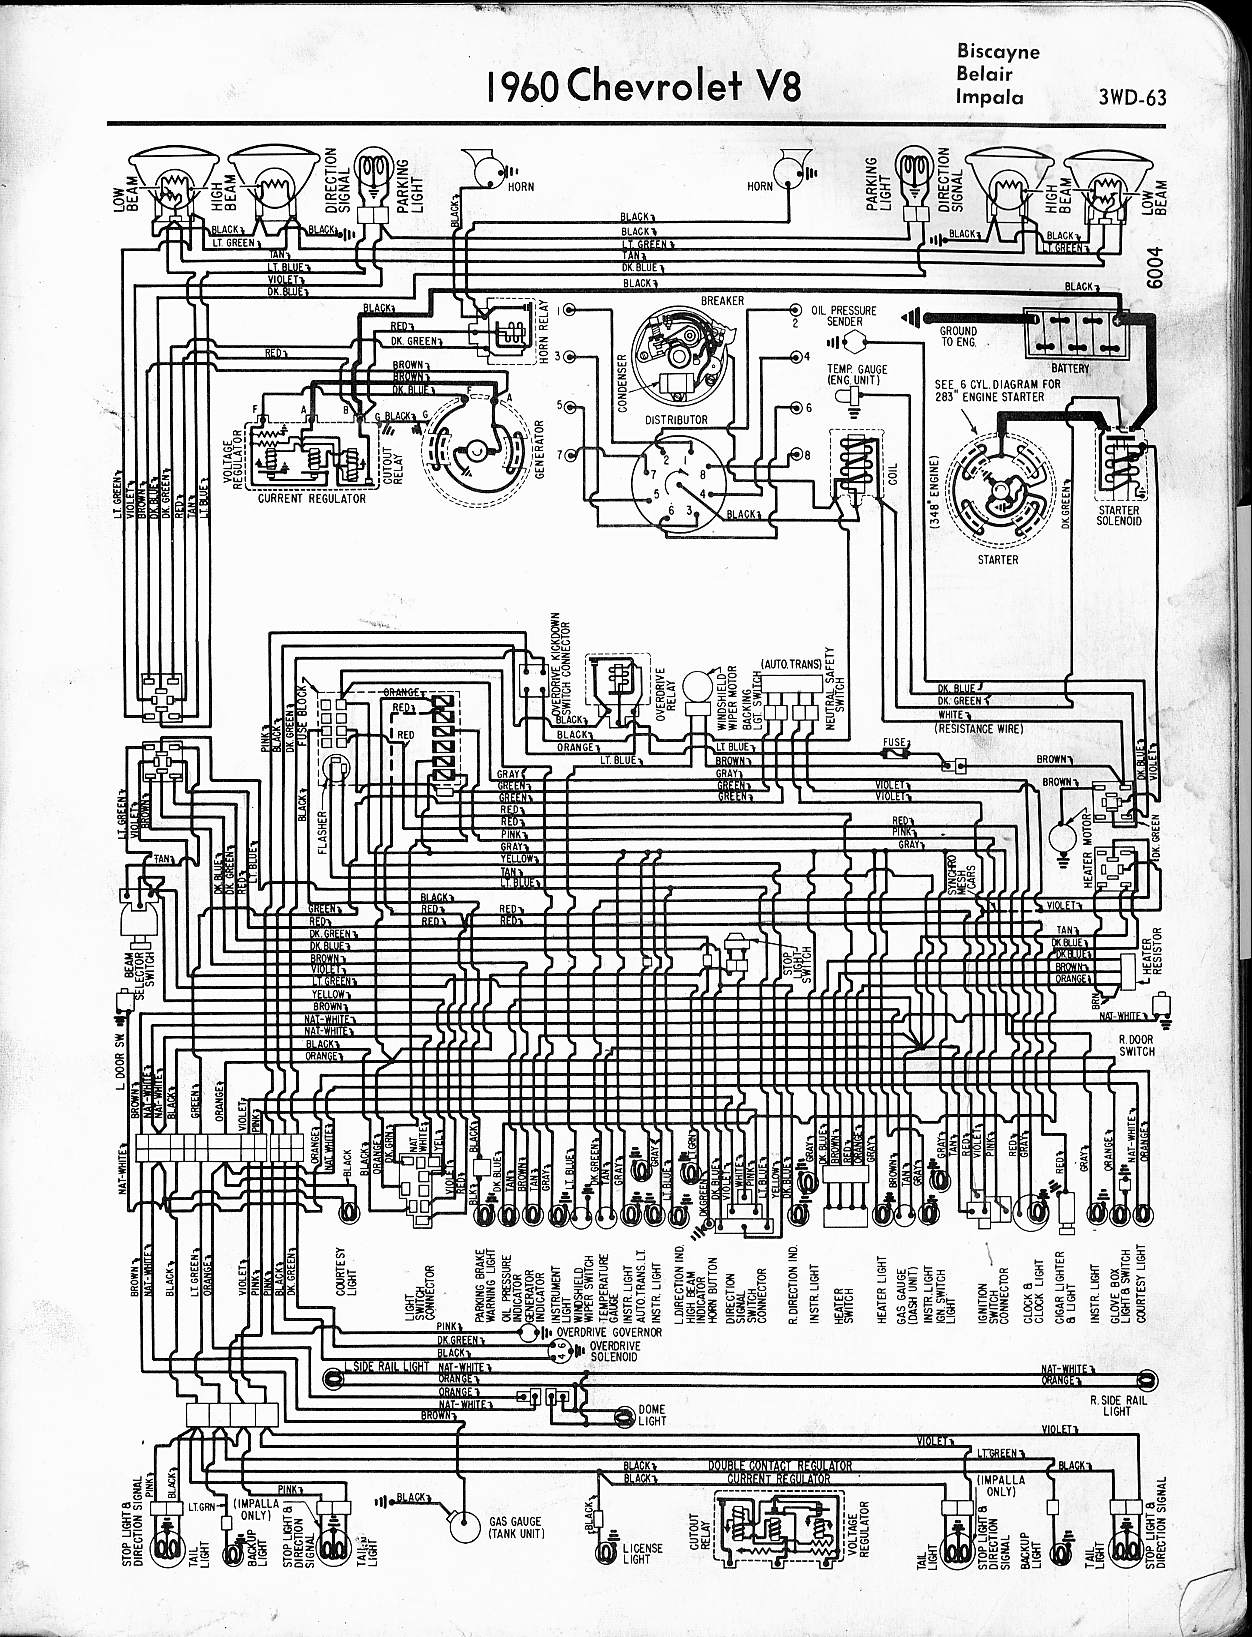 1962 Chevy Truck Wiring Diagram 31 Images C10 Mwirechev60 3wd 063 1964 Impala Red U2022